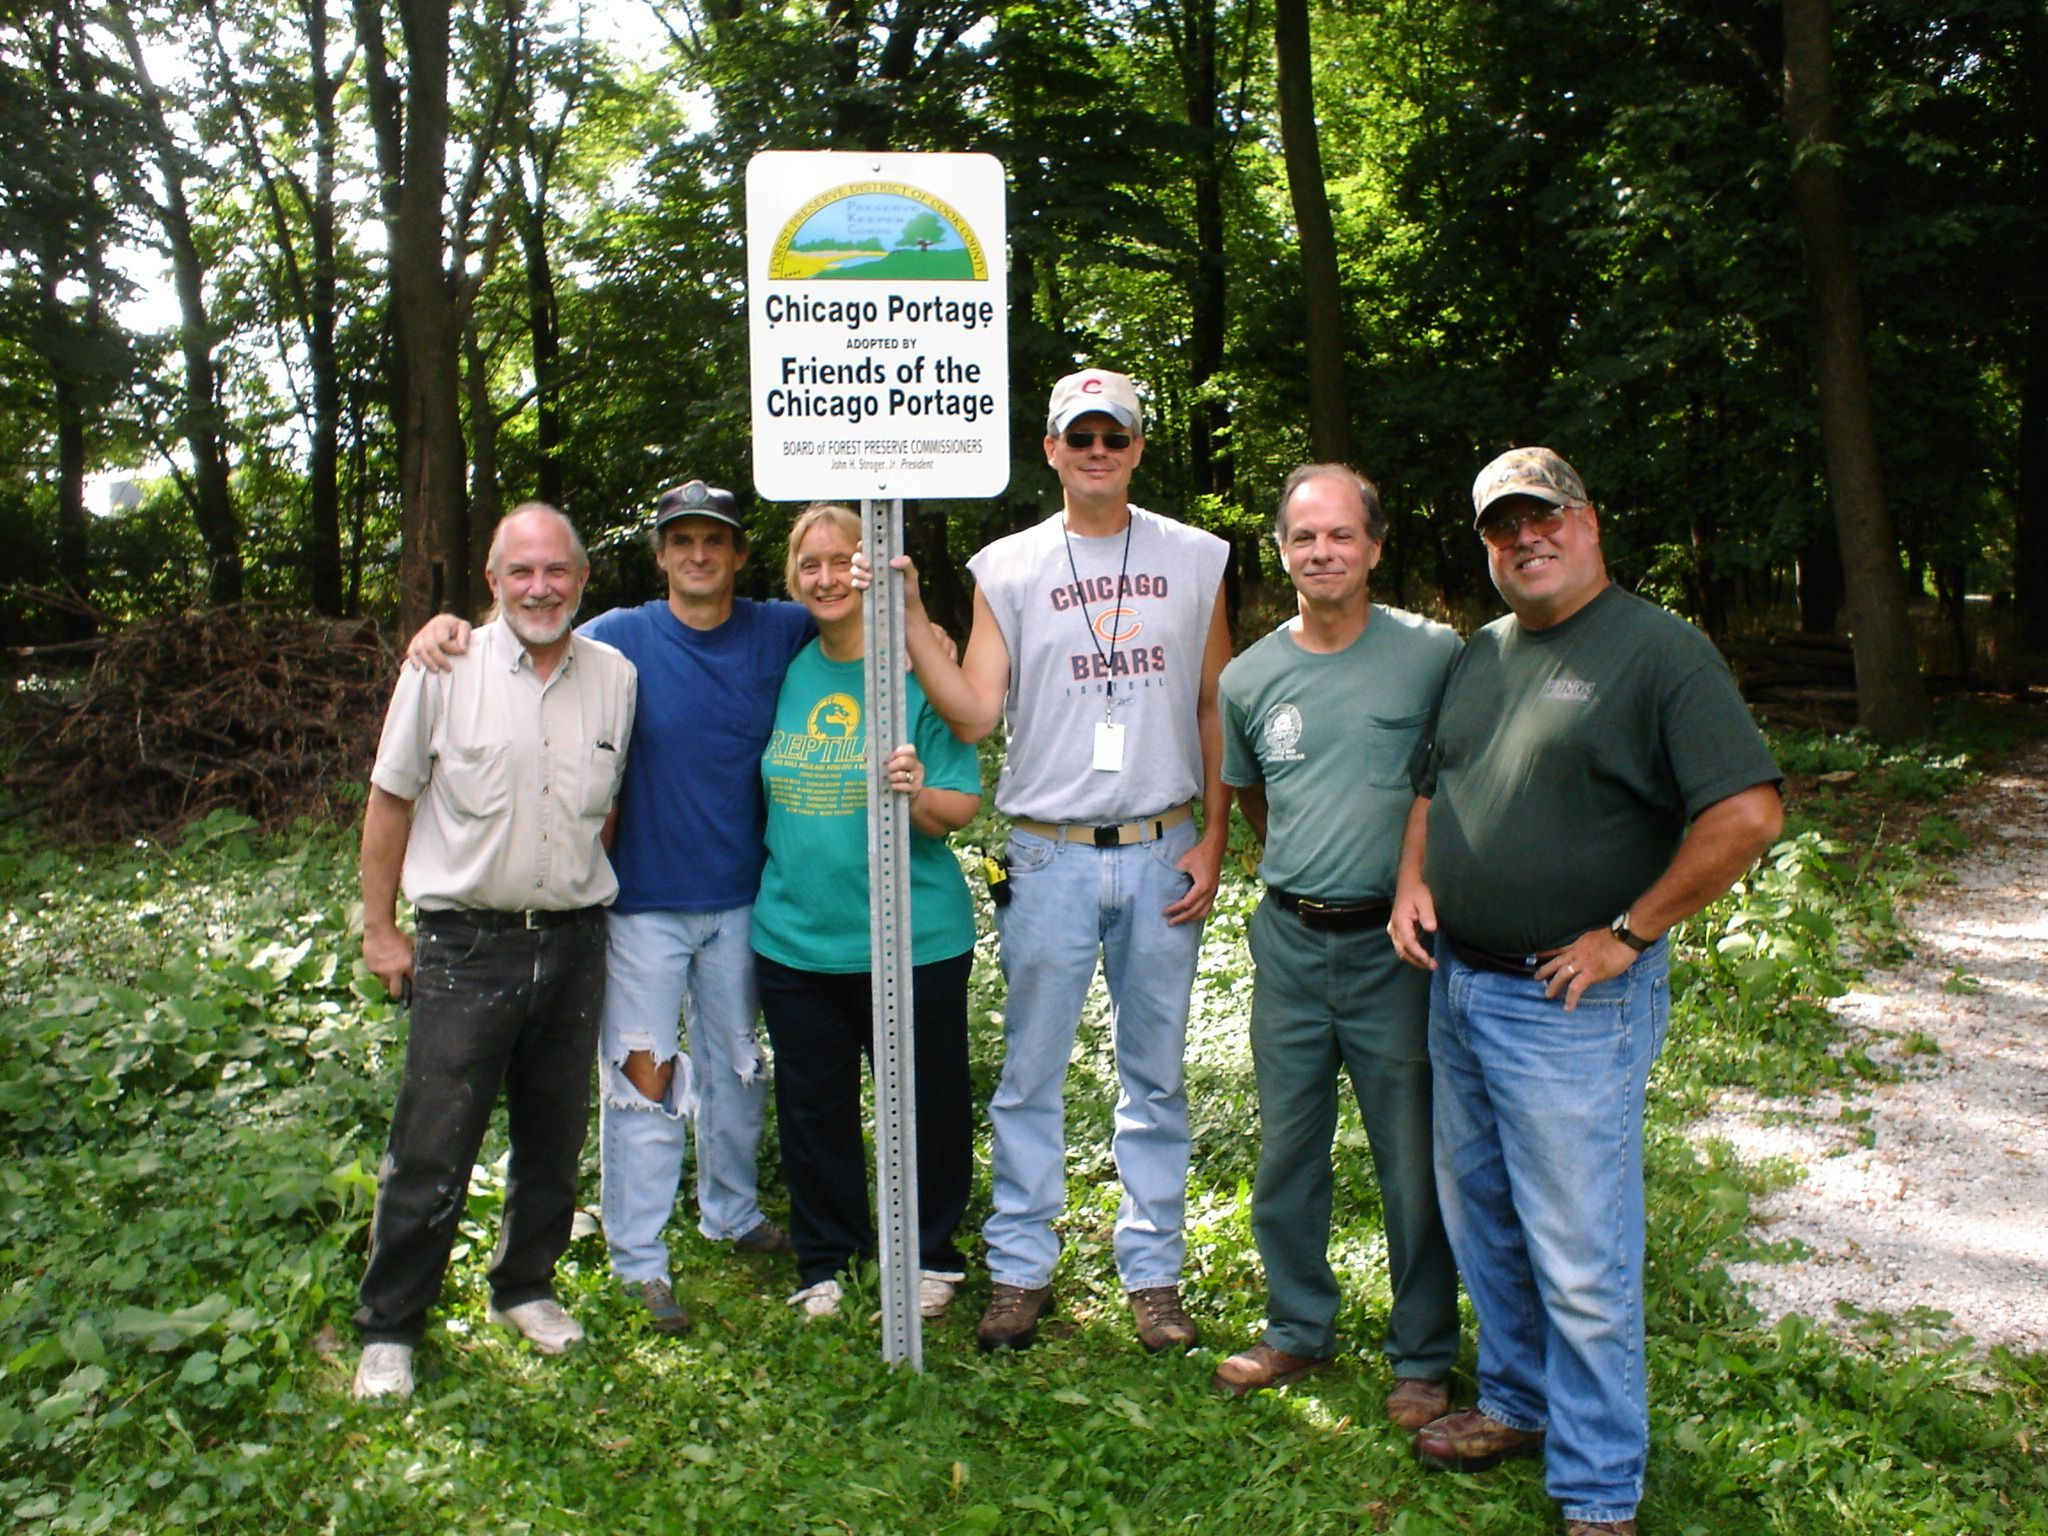 Friends of the Chicago Portage